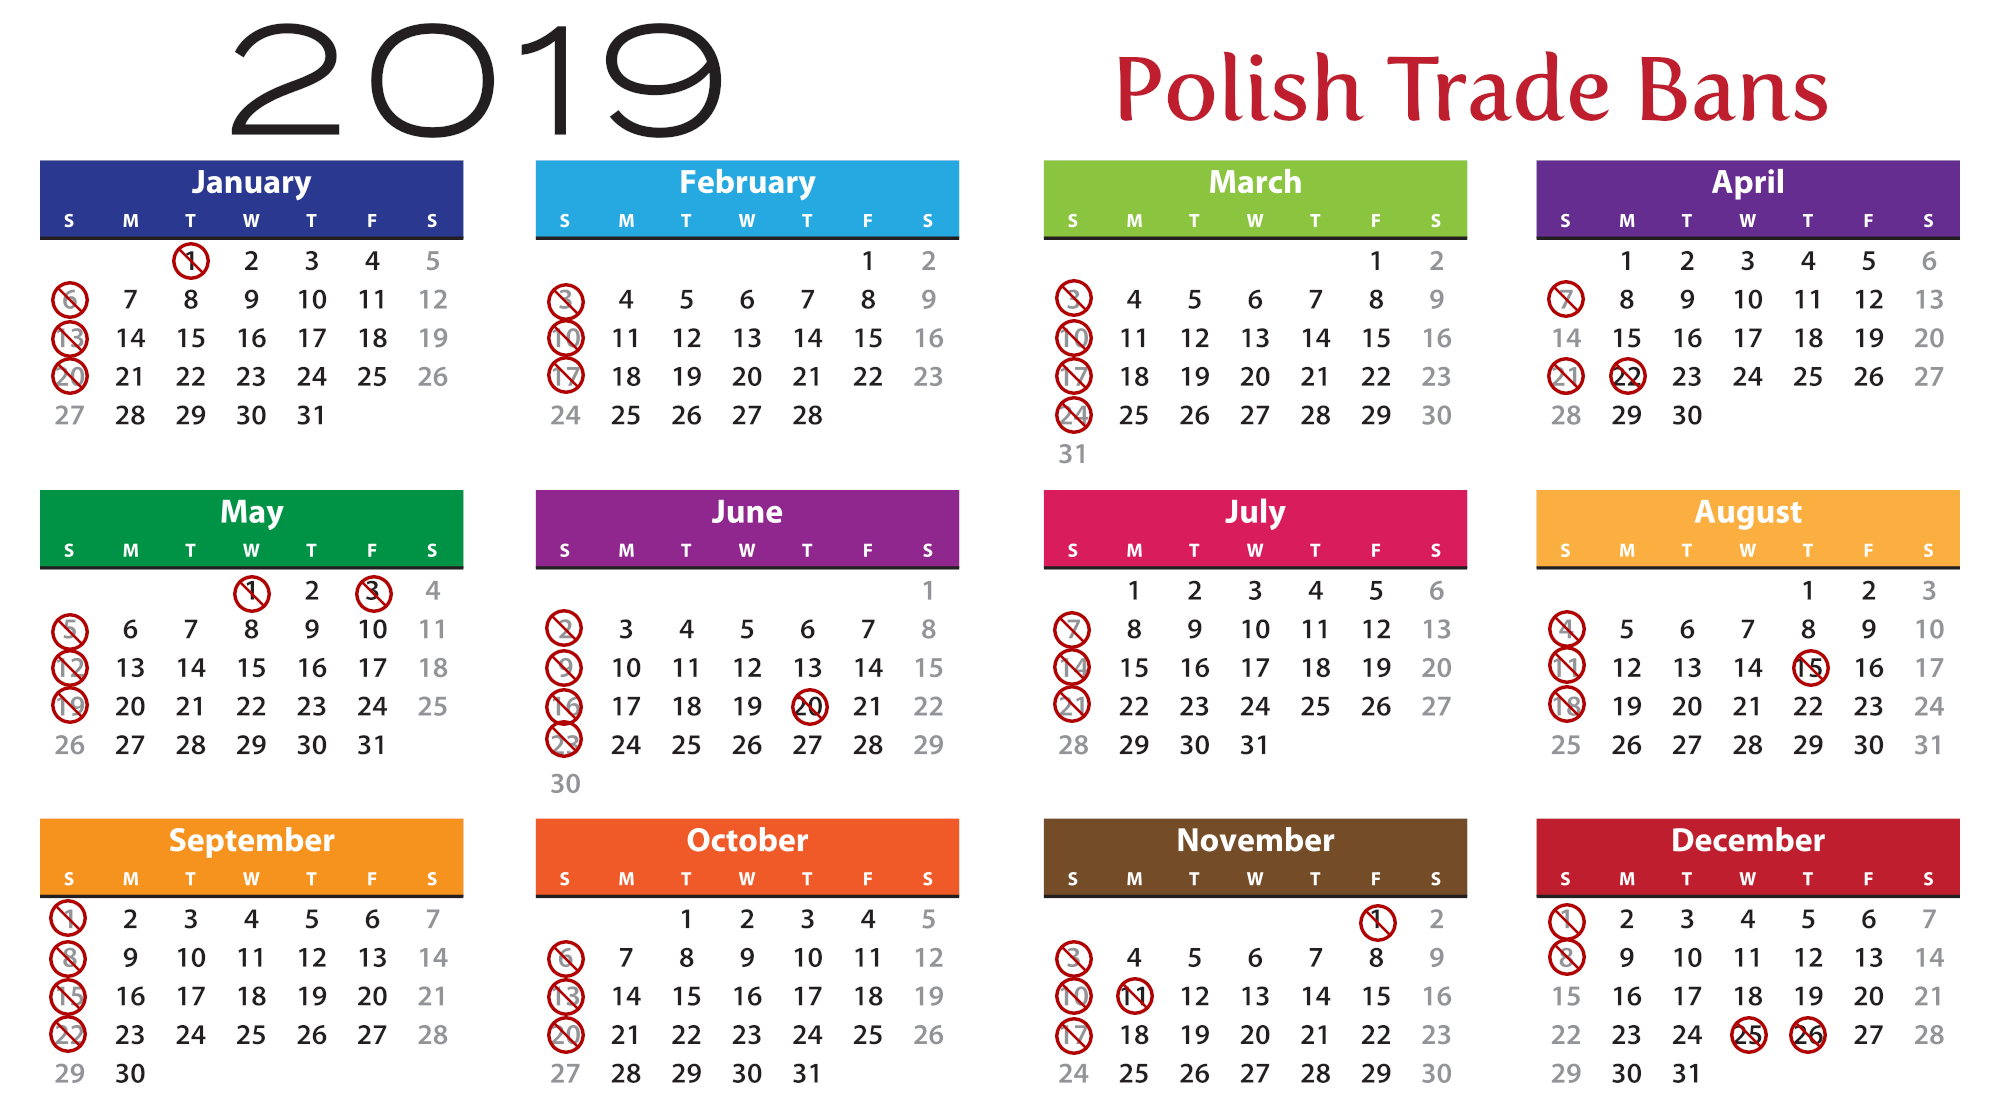 Calendrier Election 2019.When Will Polish Shops Be Closed In 2019 The Krakow Post